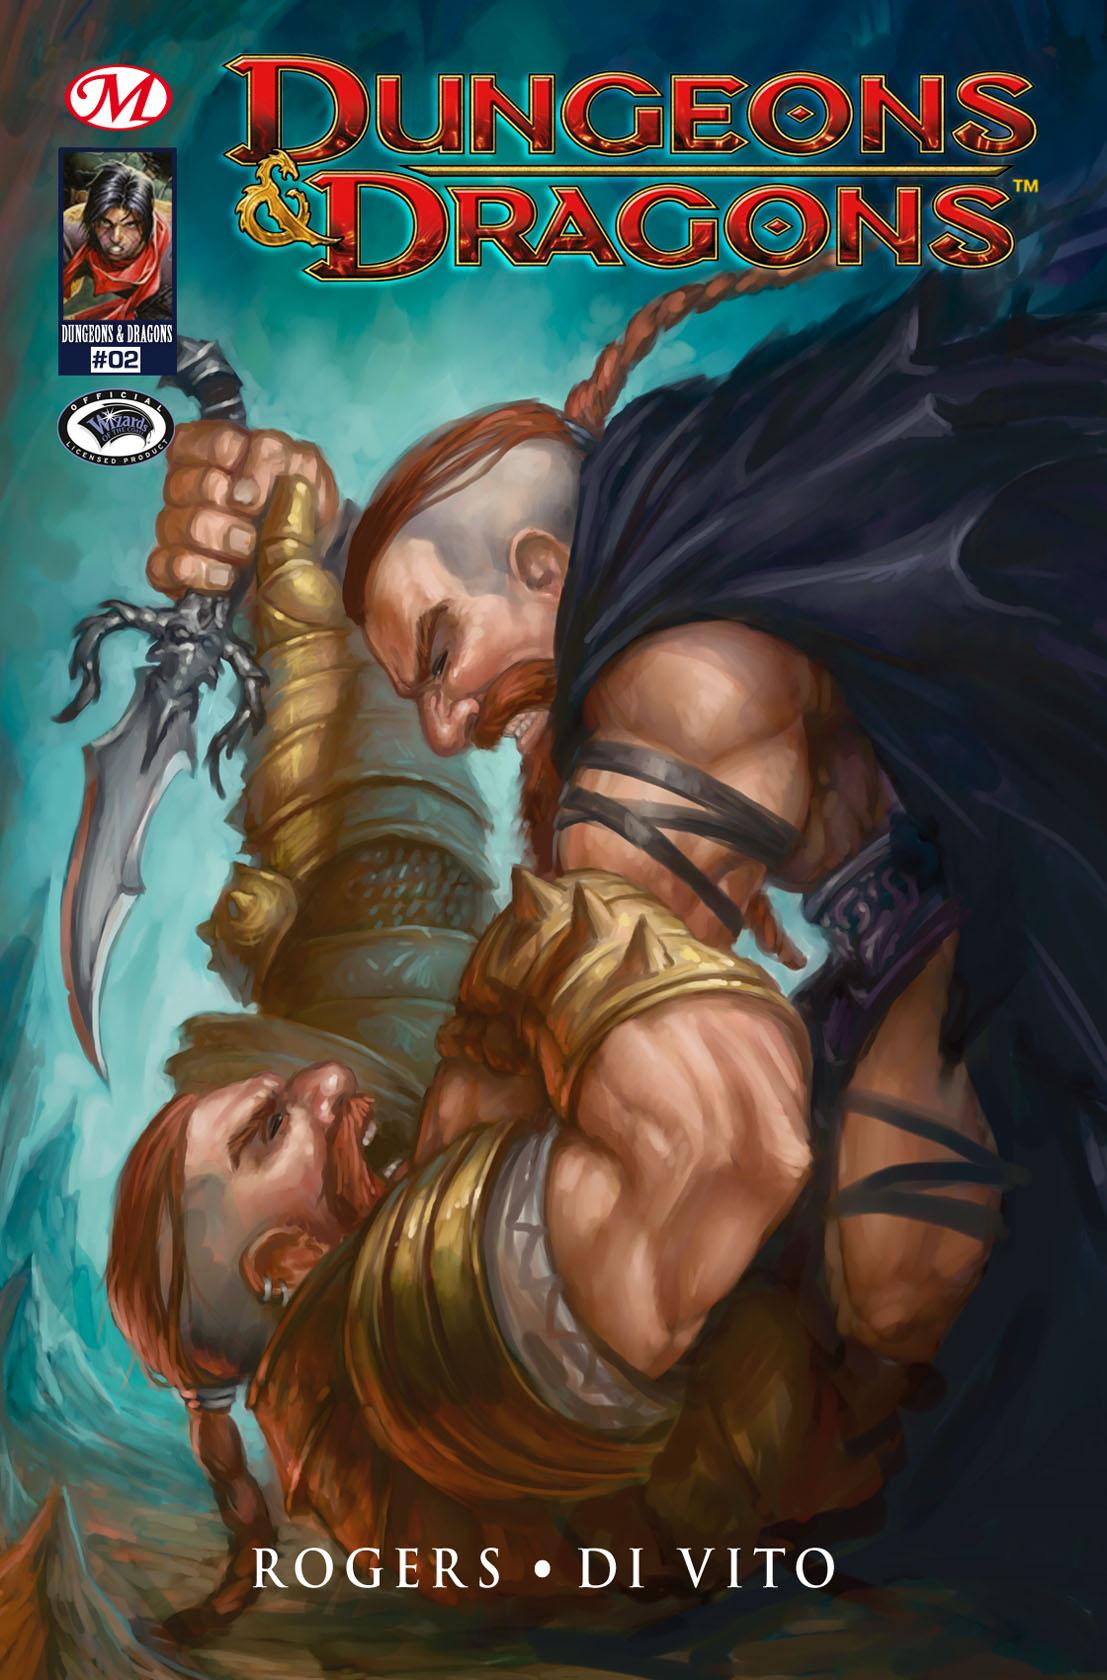 Dungeons & Dragons #2, DUNGEONS & DRAGONS, T1